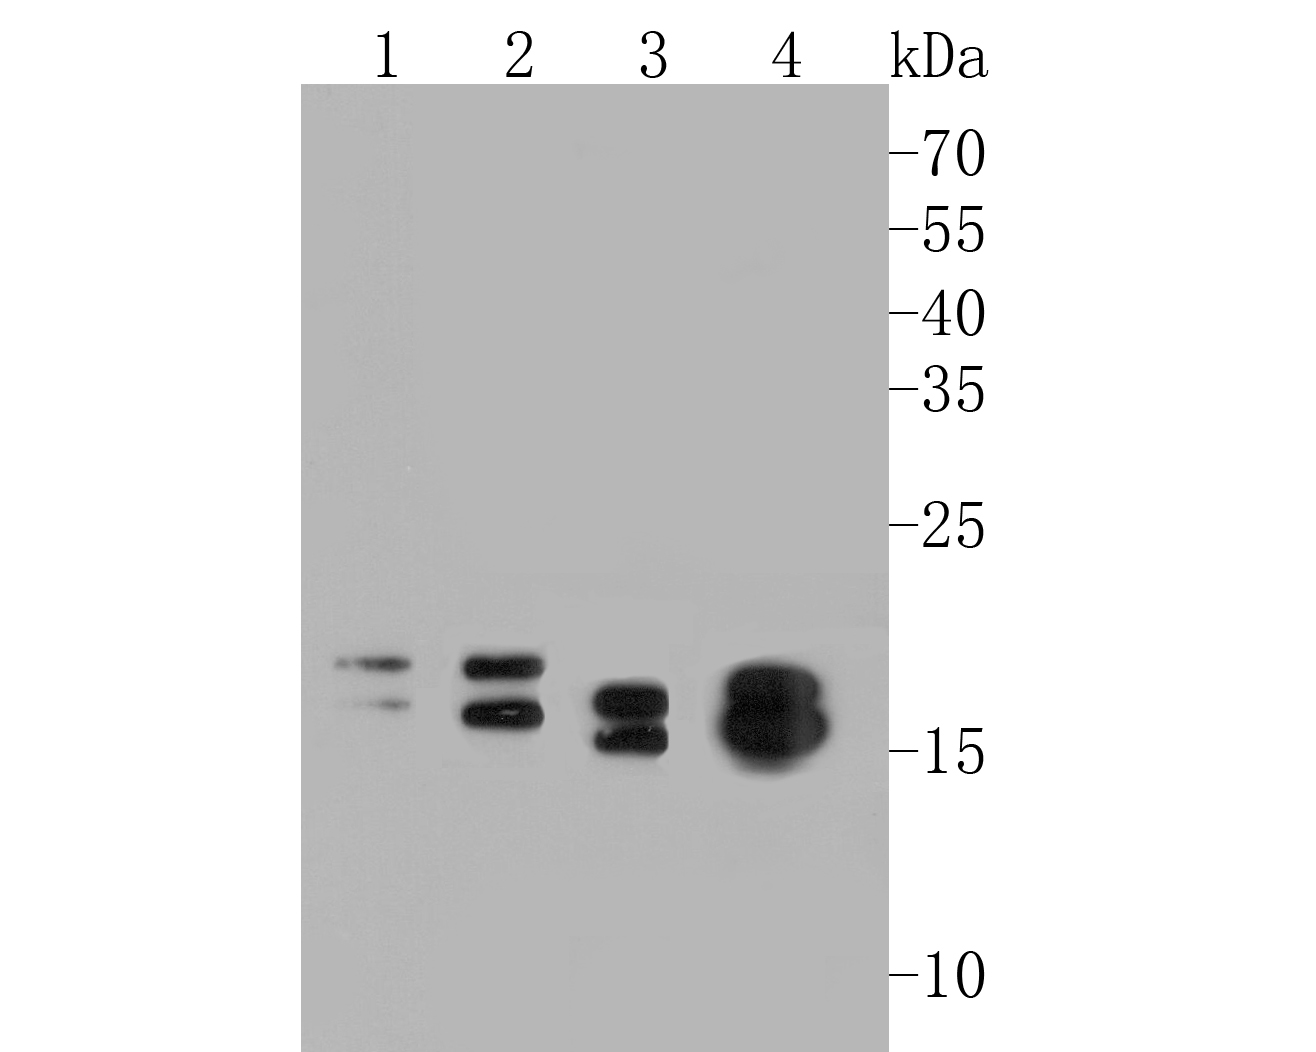 Western blot analysis of NM23 on different lysates. Proteins were transferred to a PVDF membrane and blocked with 5% BSA in PBS for 1 hour at room temperature. The primary antibody (EM1901-09, 1/500) was used in 5% BSA at room temperature for 2 hours. Goat Anti-Mouse IgG - HRP Secondary Antibody (HA1001) at 1:5,000 dilution was used for 1 hour at room temperature.<br /> Positive control: <br /> Lane 1: K562 cell lysate<br /> Lane 2: A549 cell lysate<br /> Lane 3: HepG2 cell lysate<br /> Lane 4: 293 cell lysate